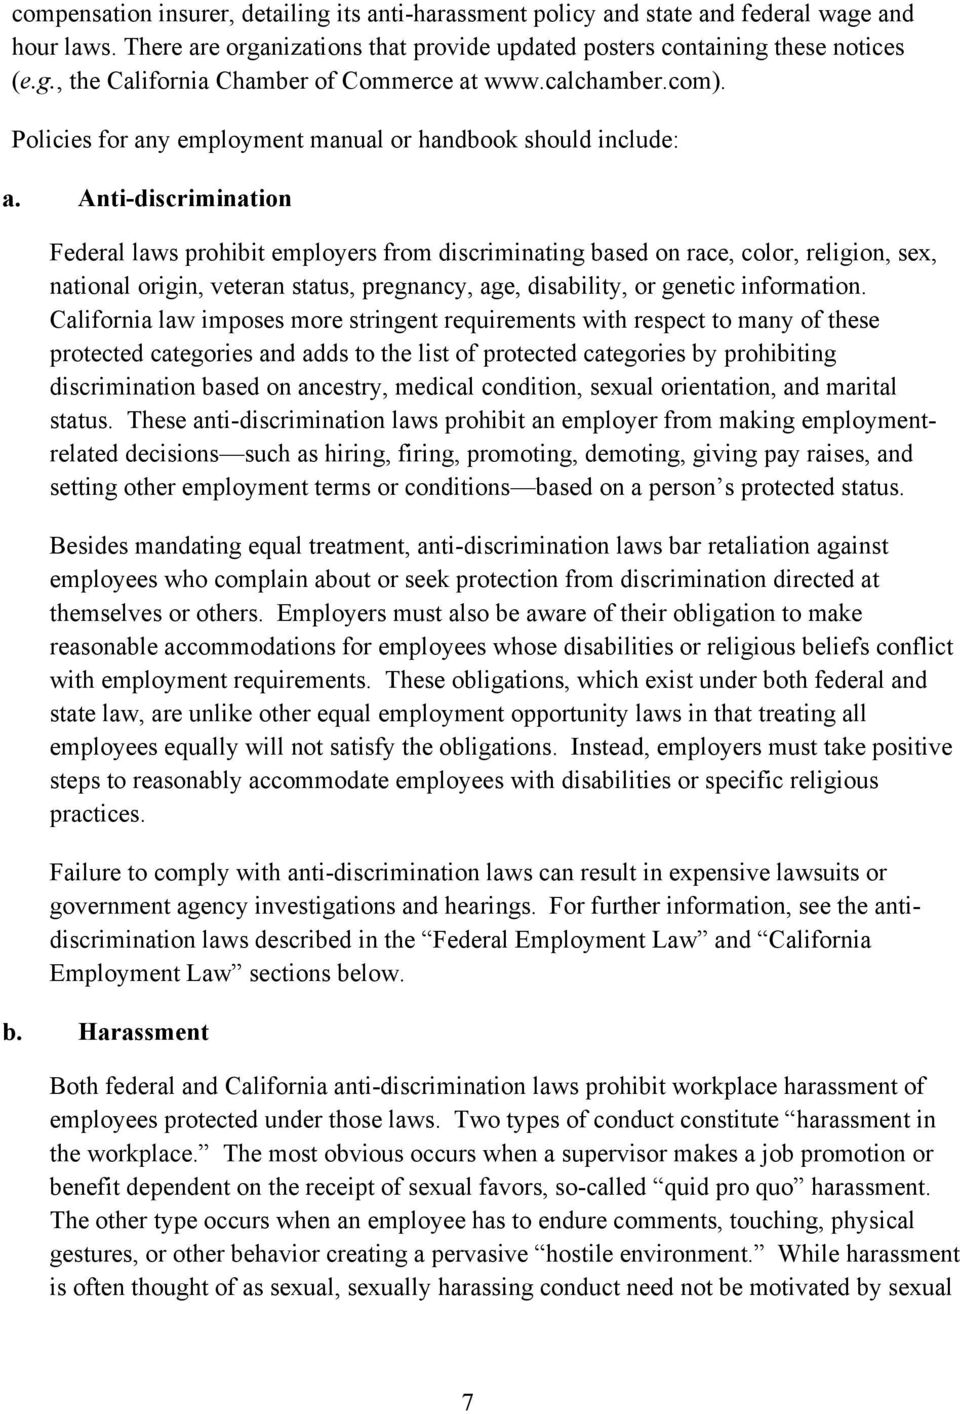 Anti-discrimination Federal laws prohibit employers from discriminating based on race, color, religion, sex, national origin, veteran status, pregnancy, age, disability, or genetic information.